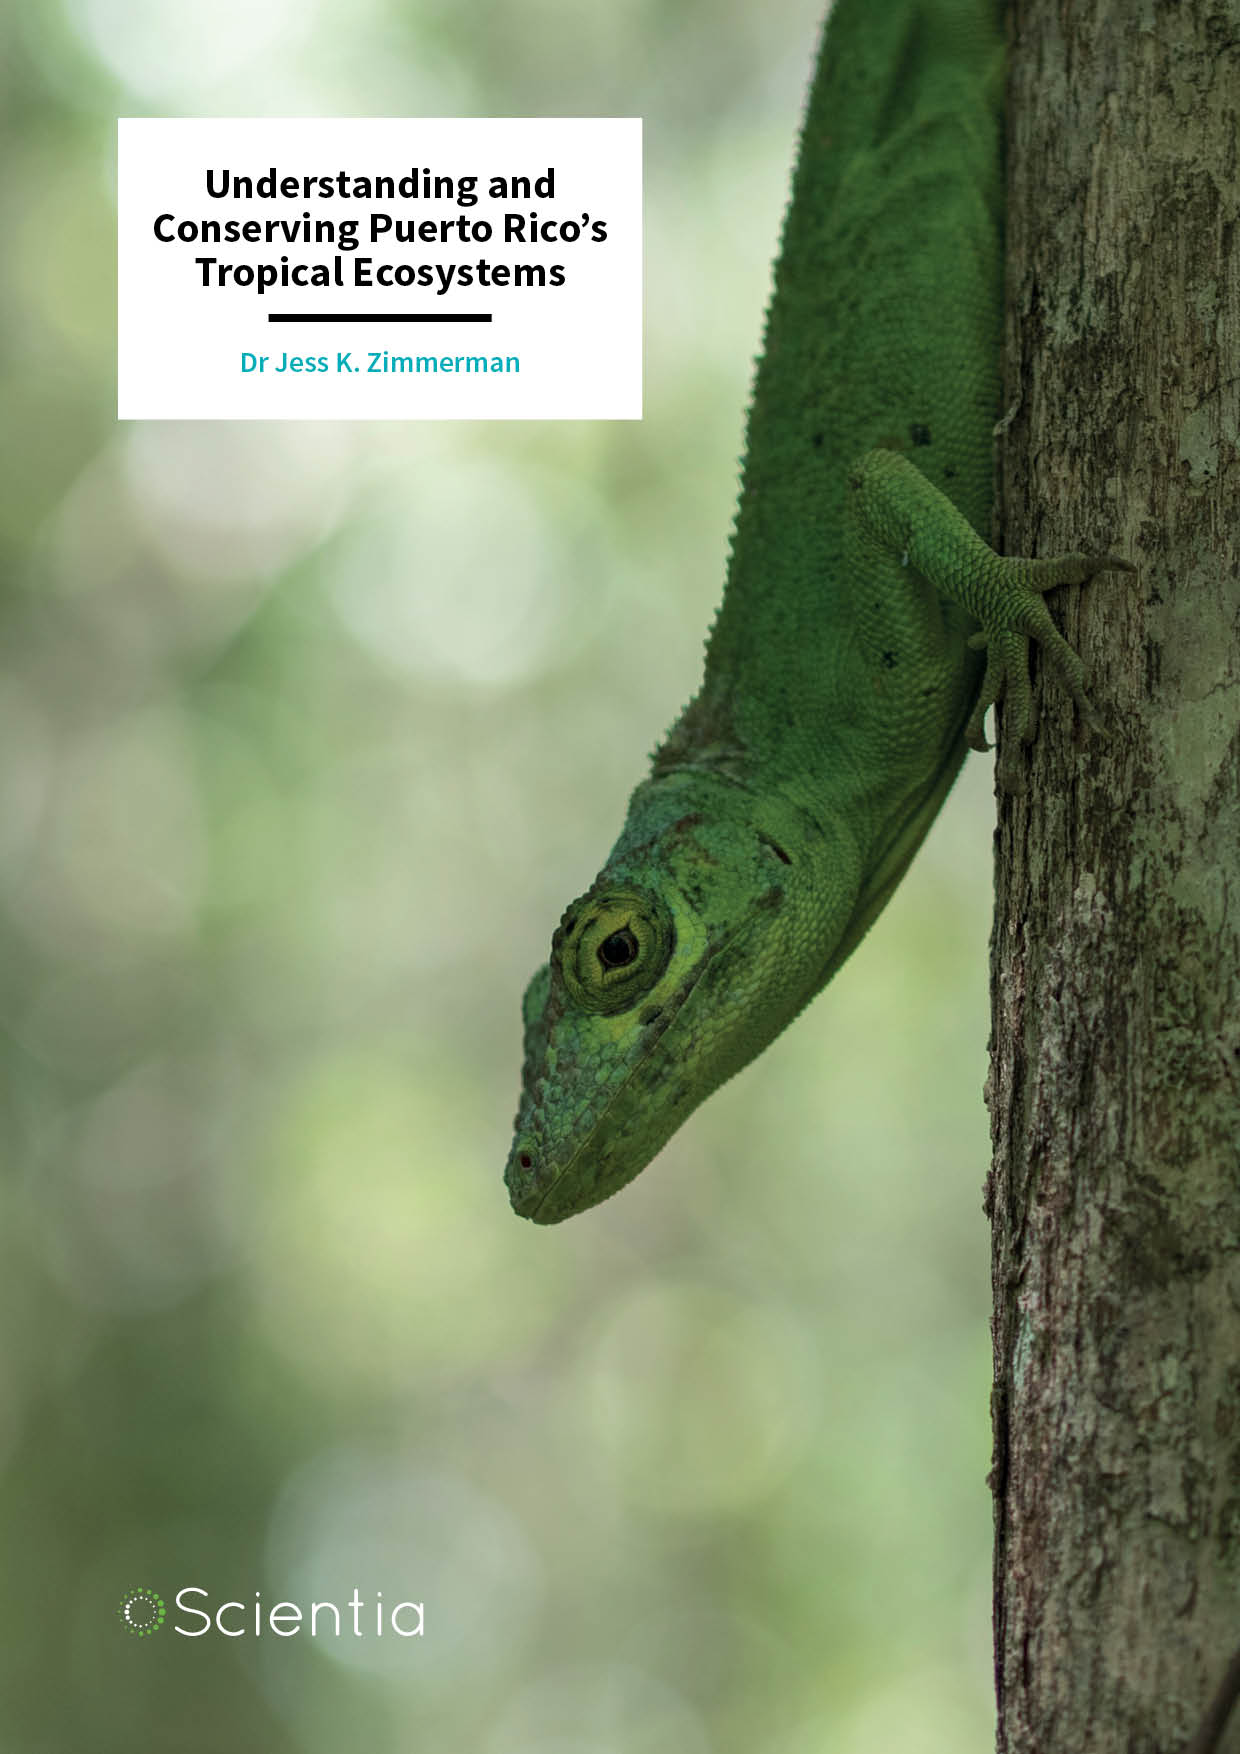 Dr Jess Zimmerman – Understanding and Conserving Puerto Rico's Tropical Ecosystems